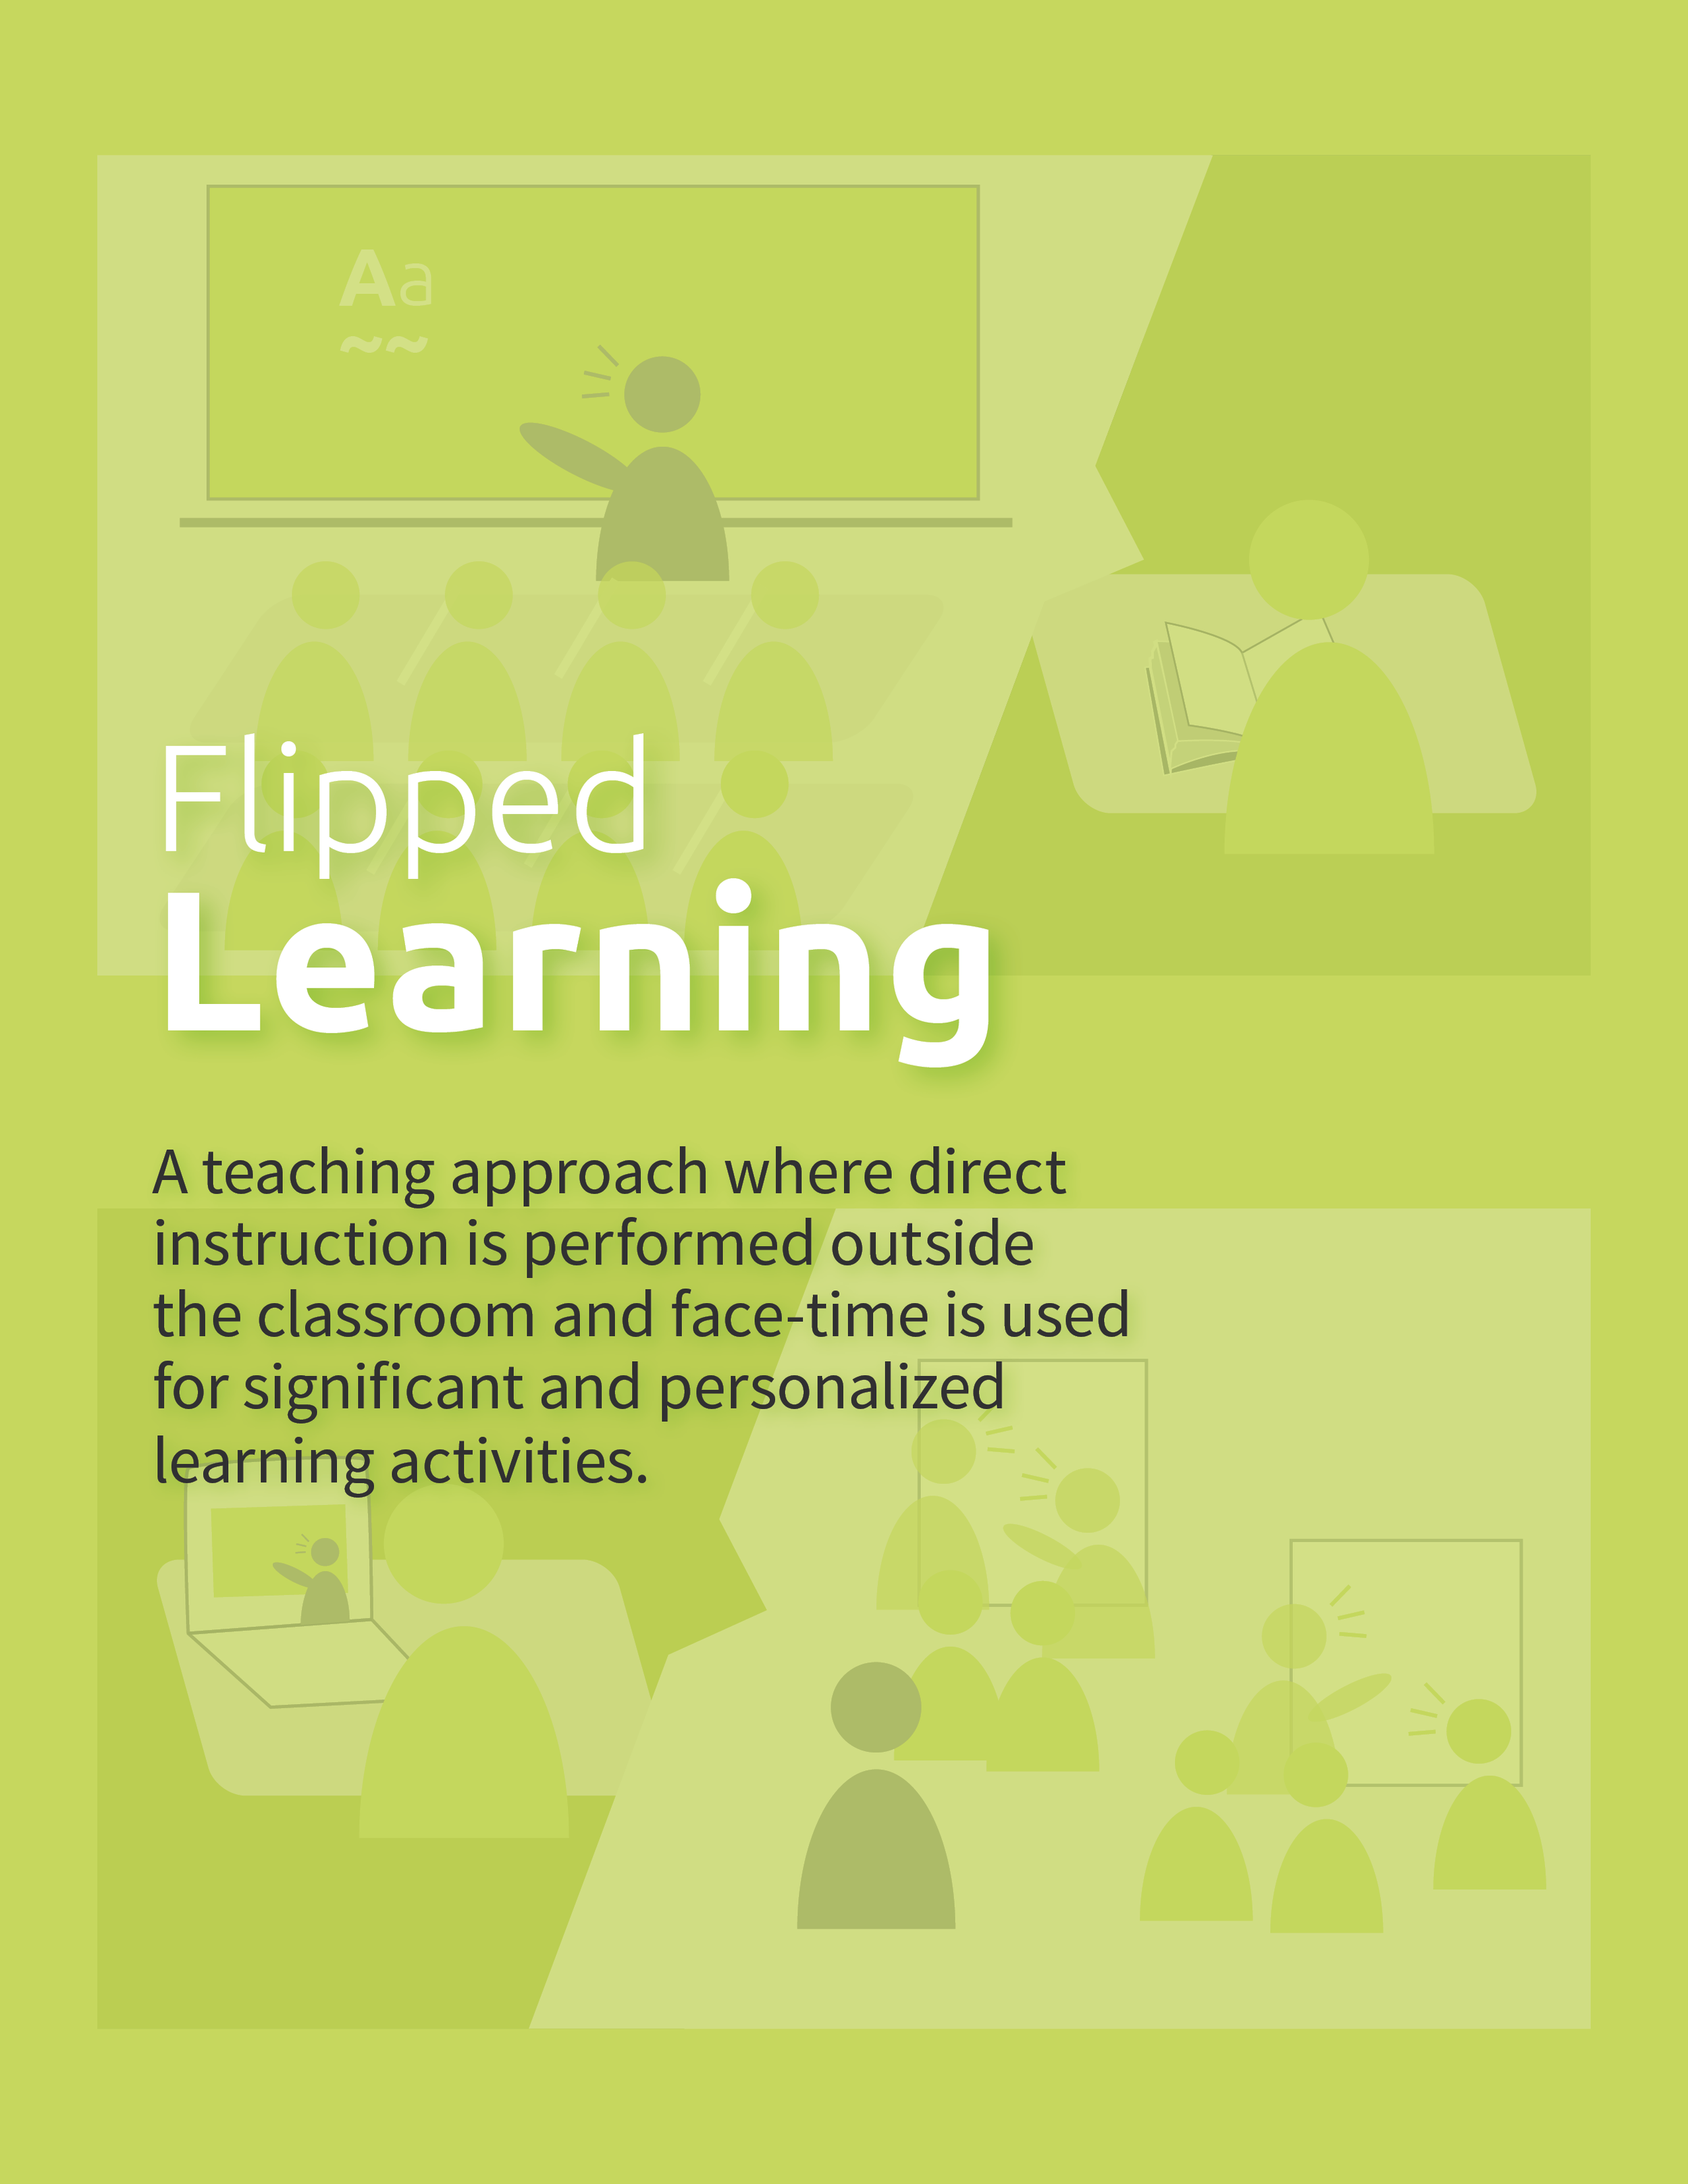 Edu Trends - Flipped Learning3.png